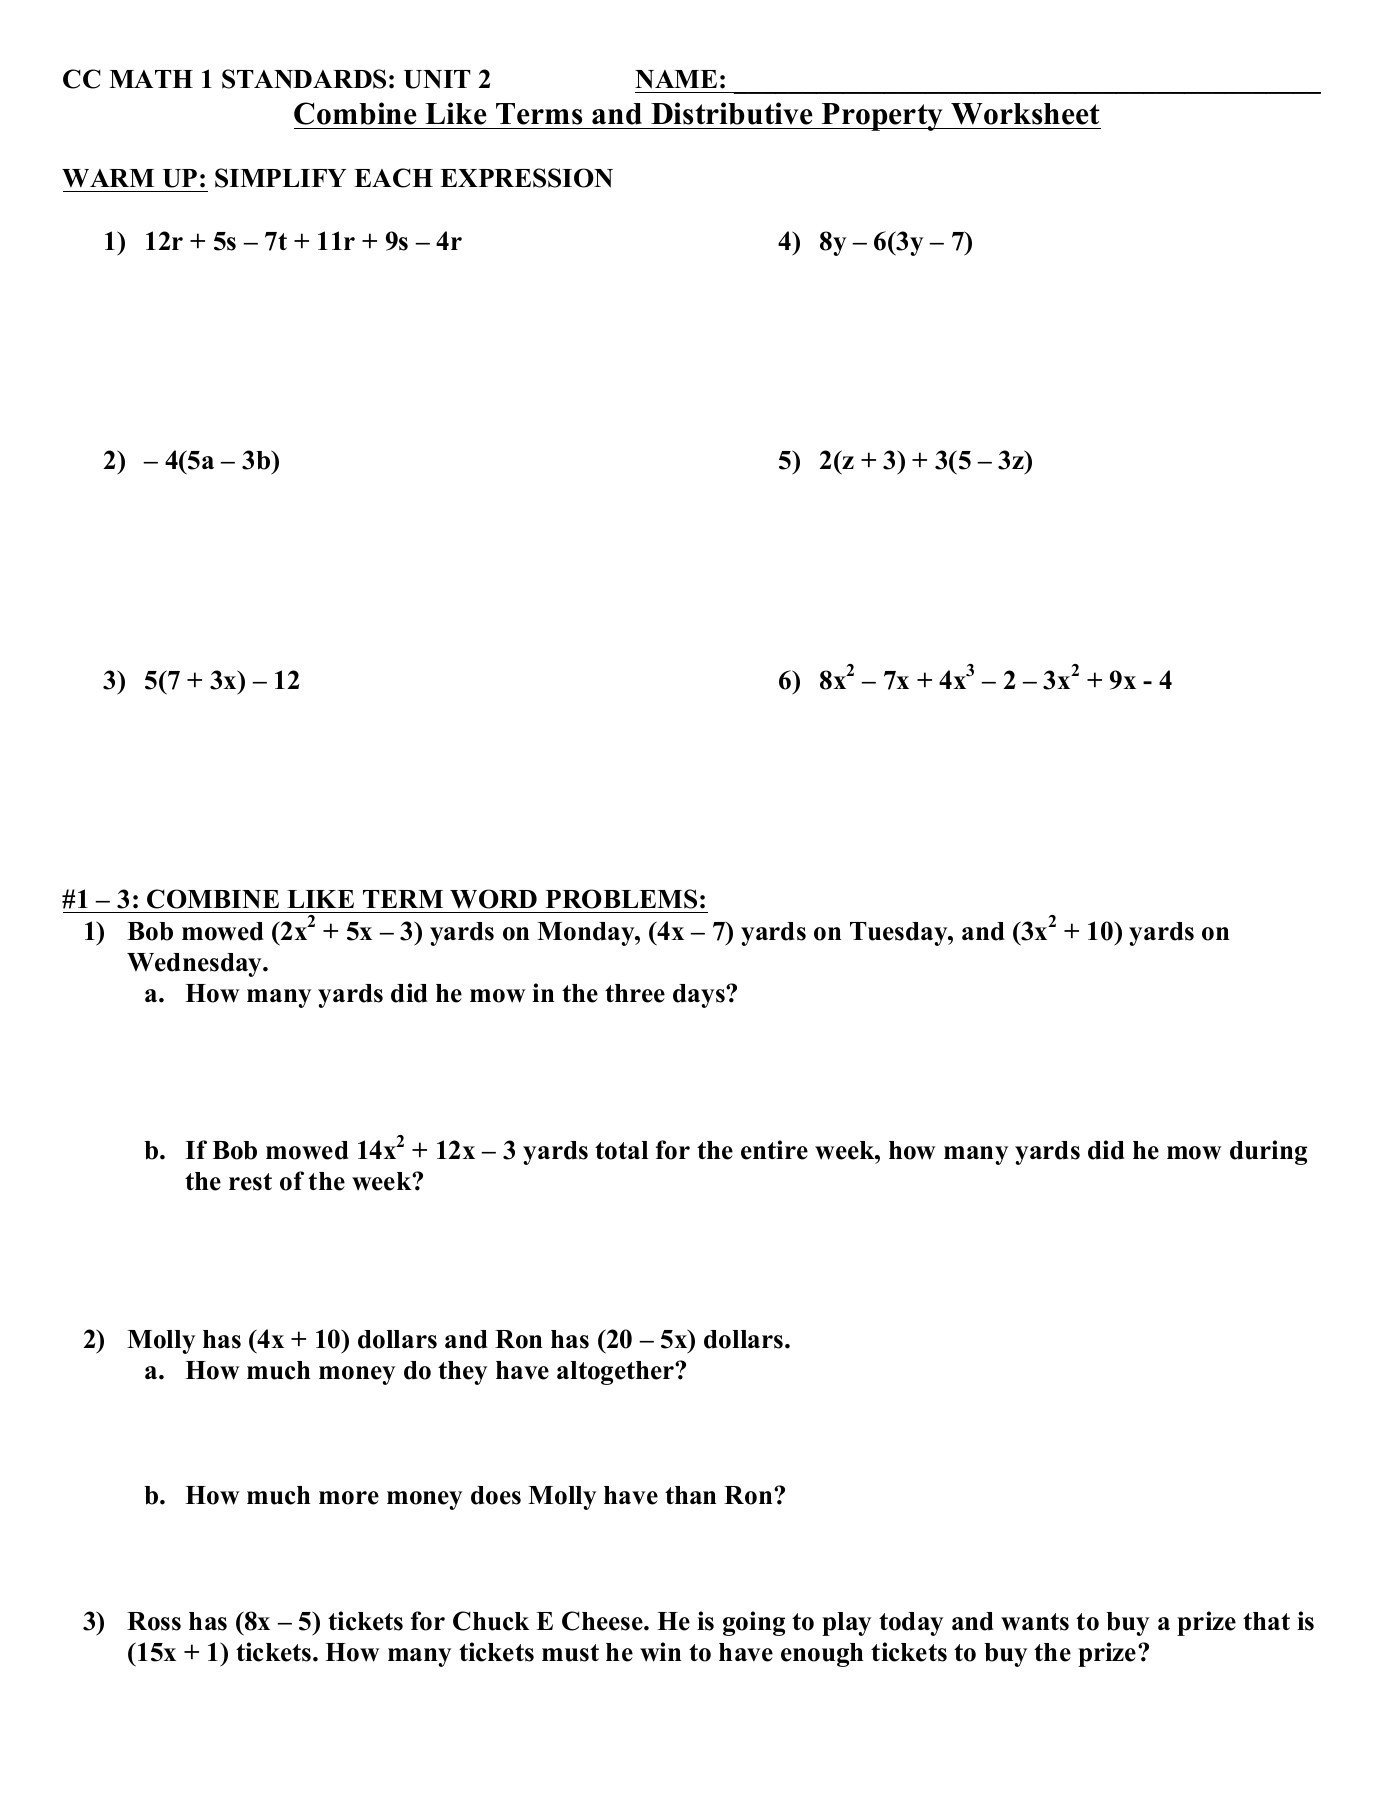 Distributive Property Worksheets Pdf Bine Like Terms and Distributive Property Worksheet Pages